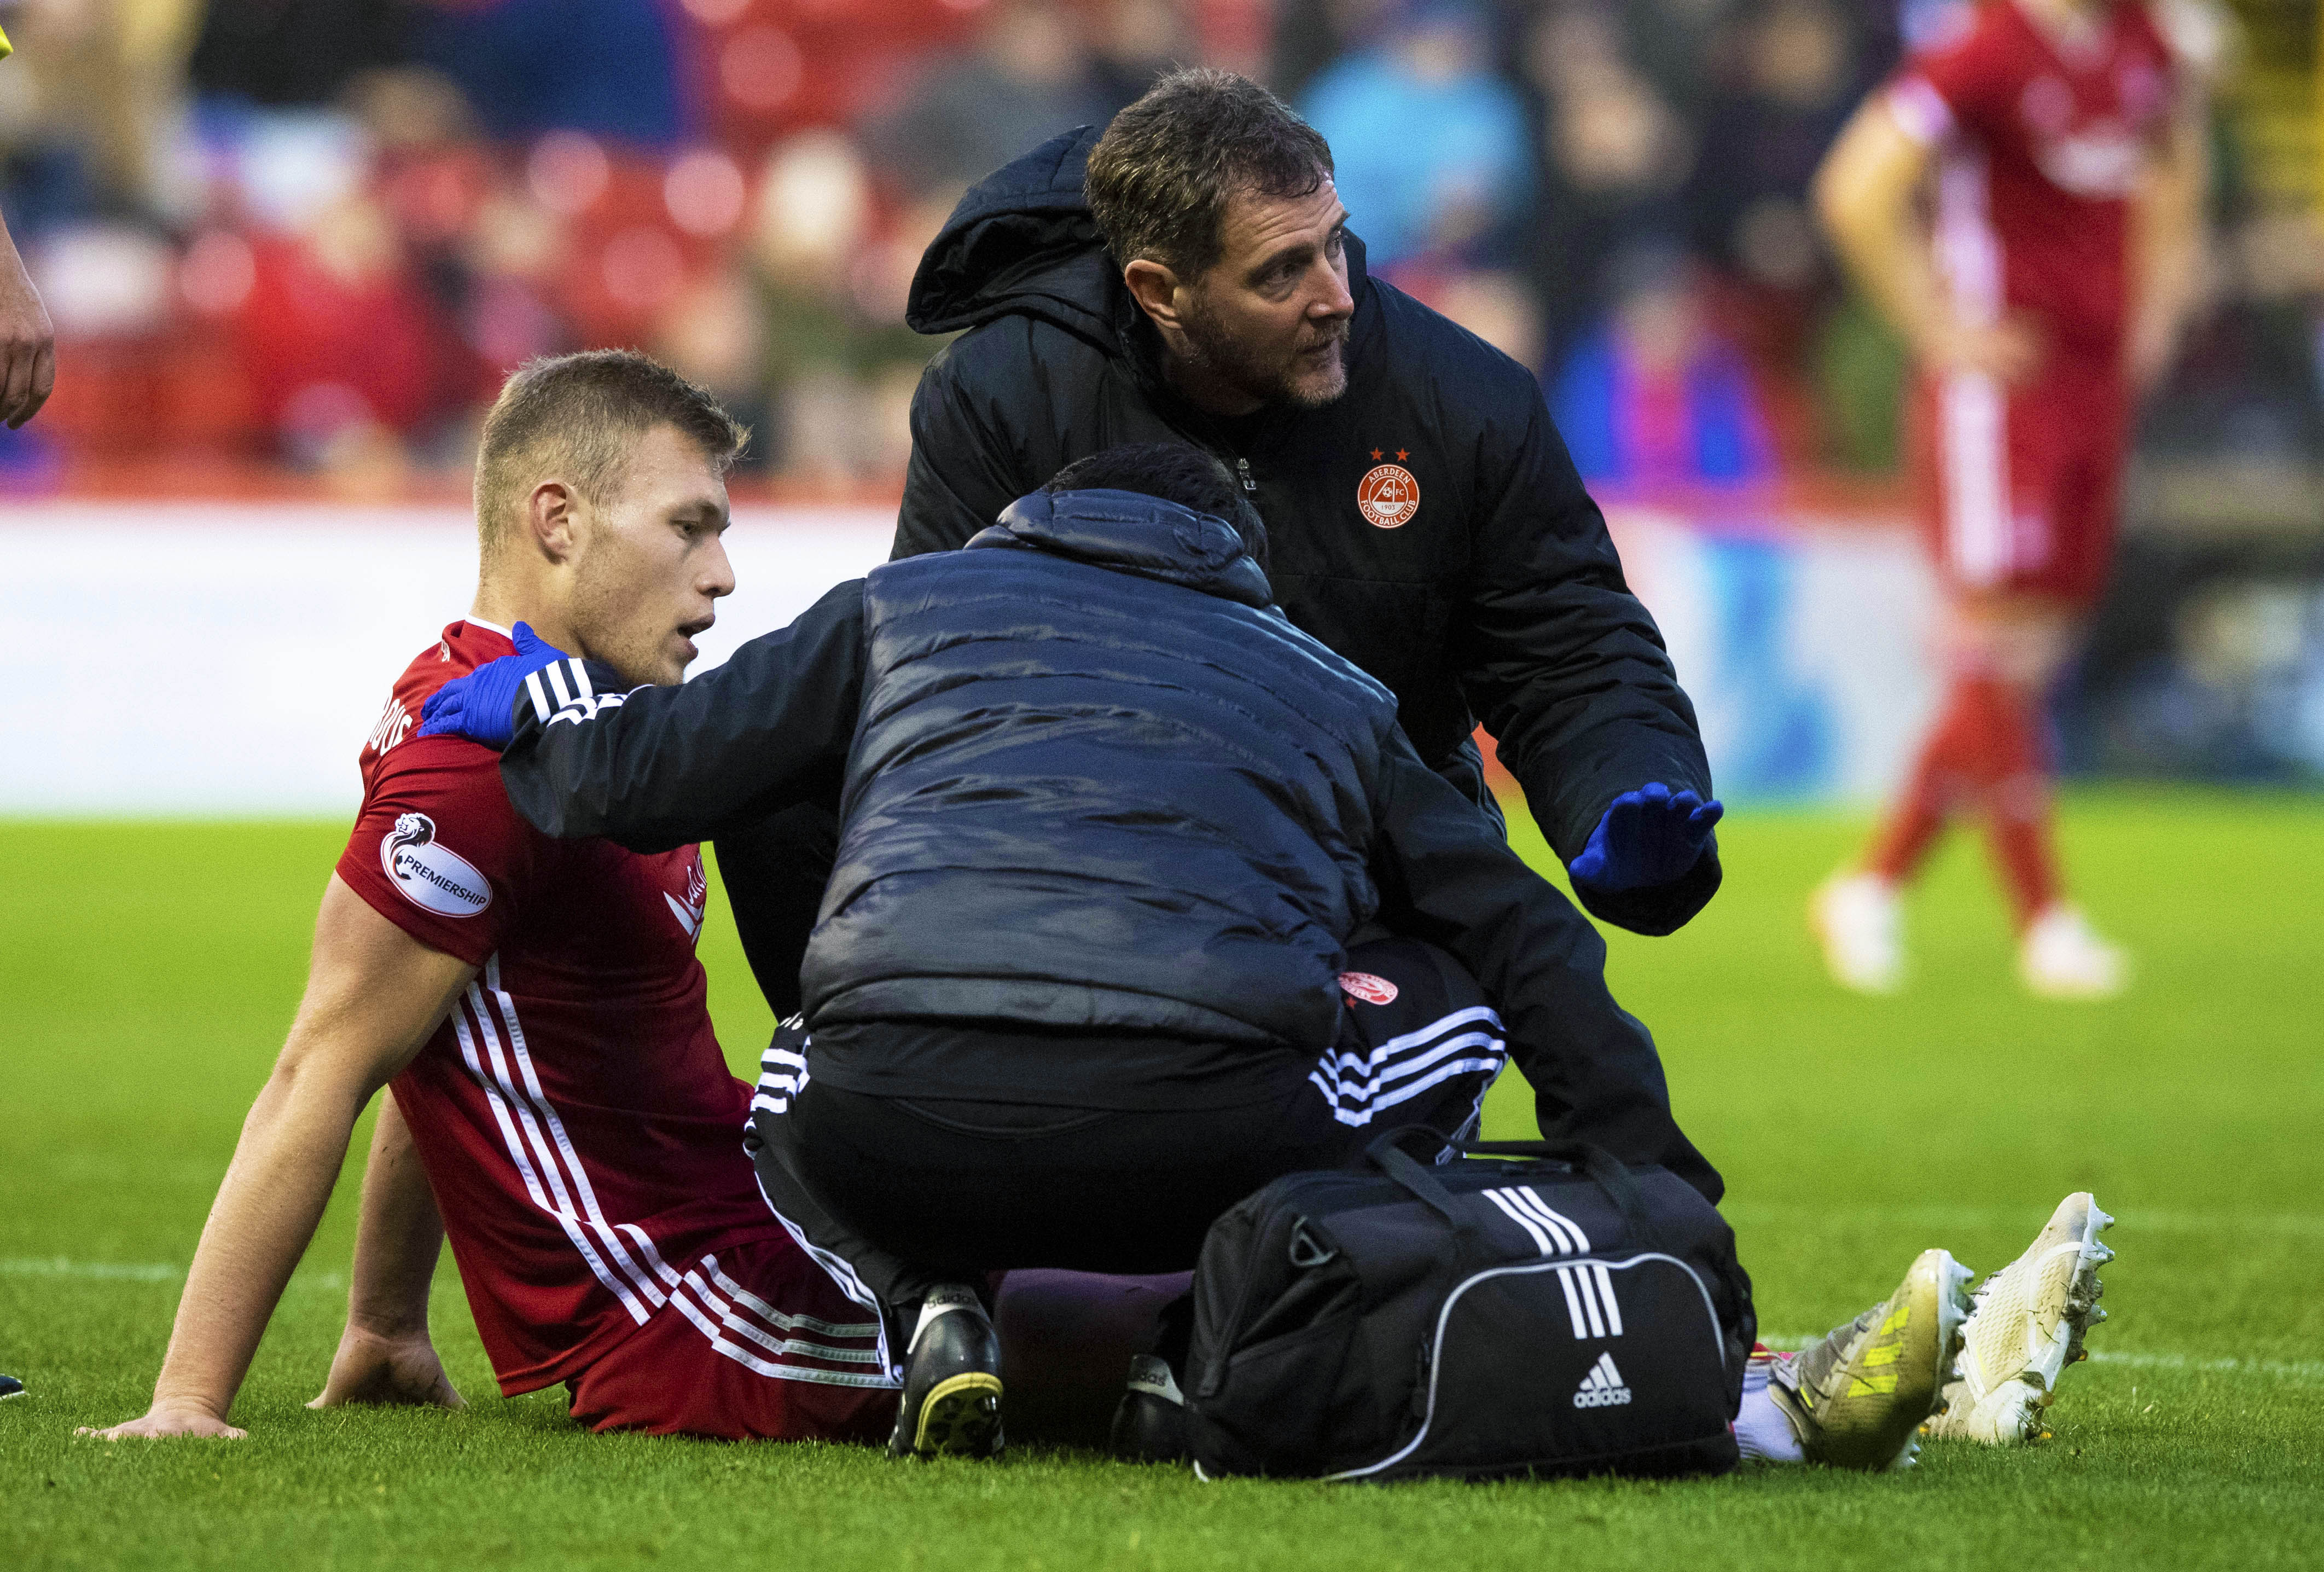 Aberdeen's Sam Cosgrove goes down with an injury and is forced off.